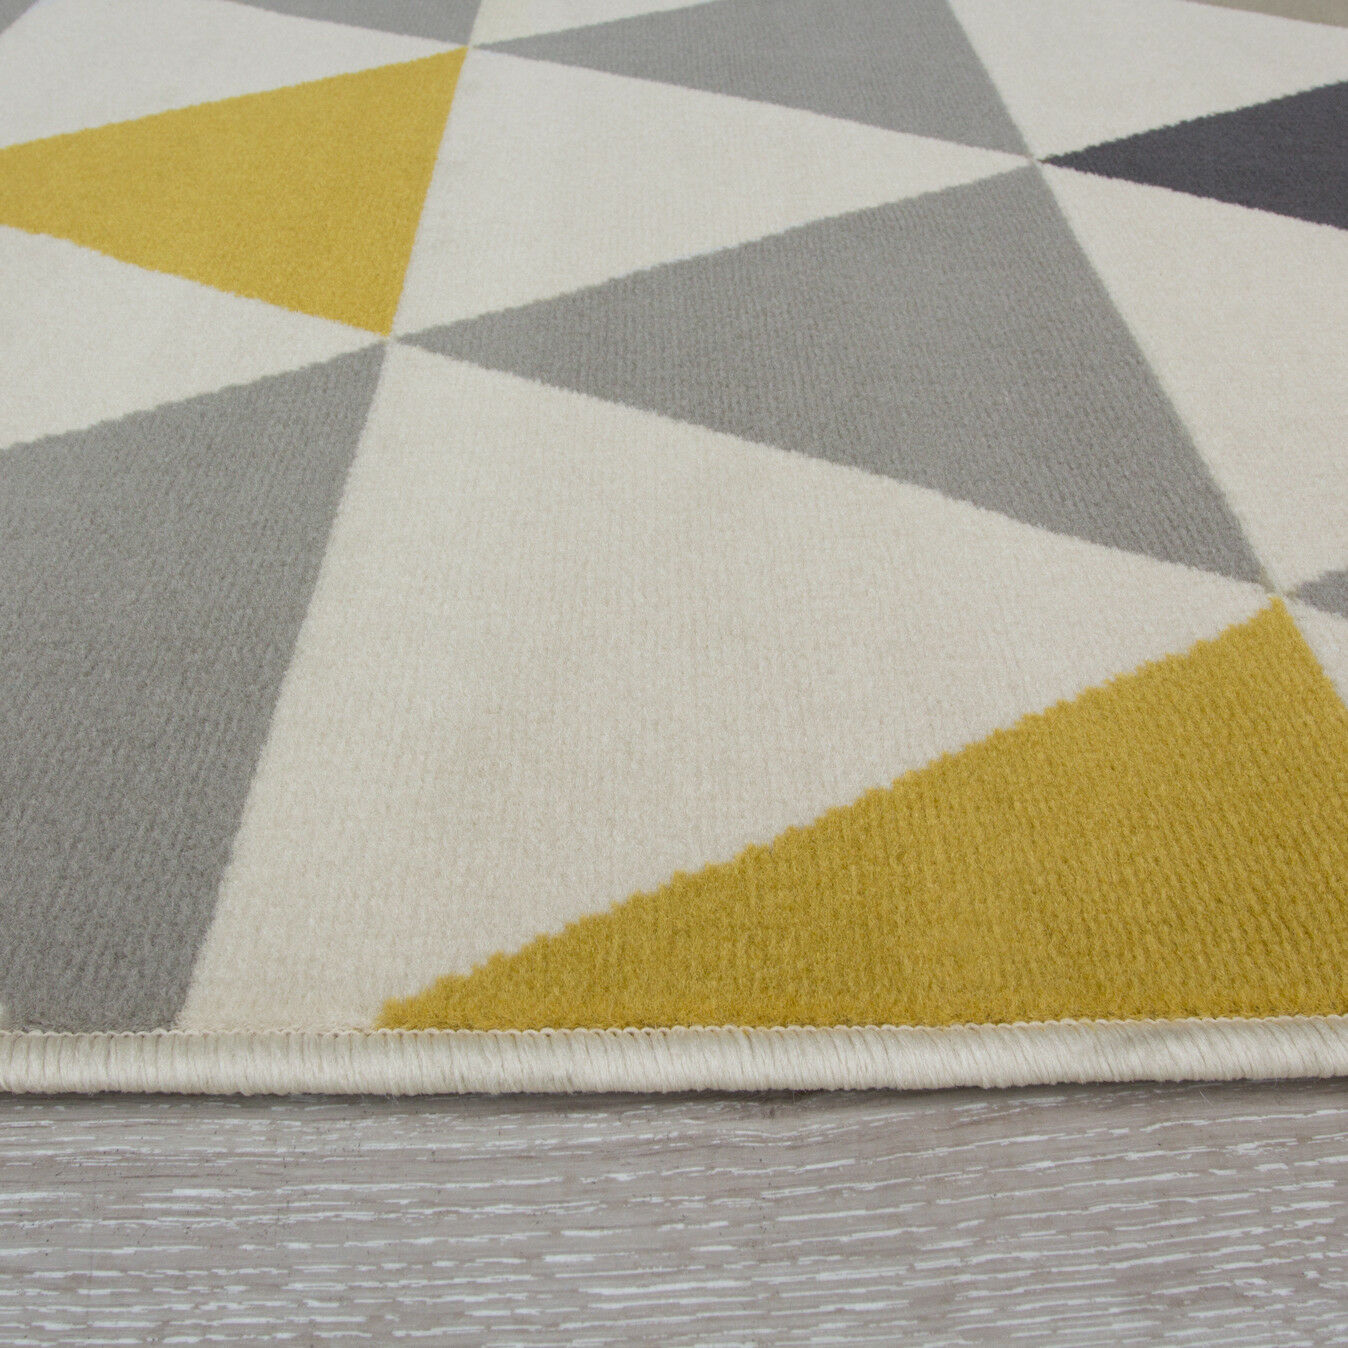 Ochre Mustard Gelb Gold Bright Large Large Large Area Rug Rugs for Living Room House Floor b2cf93